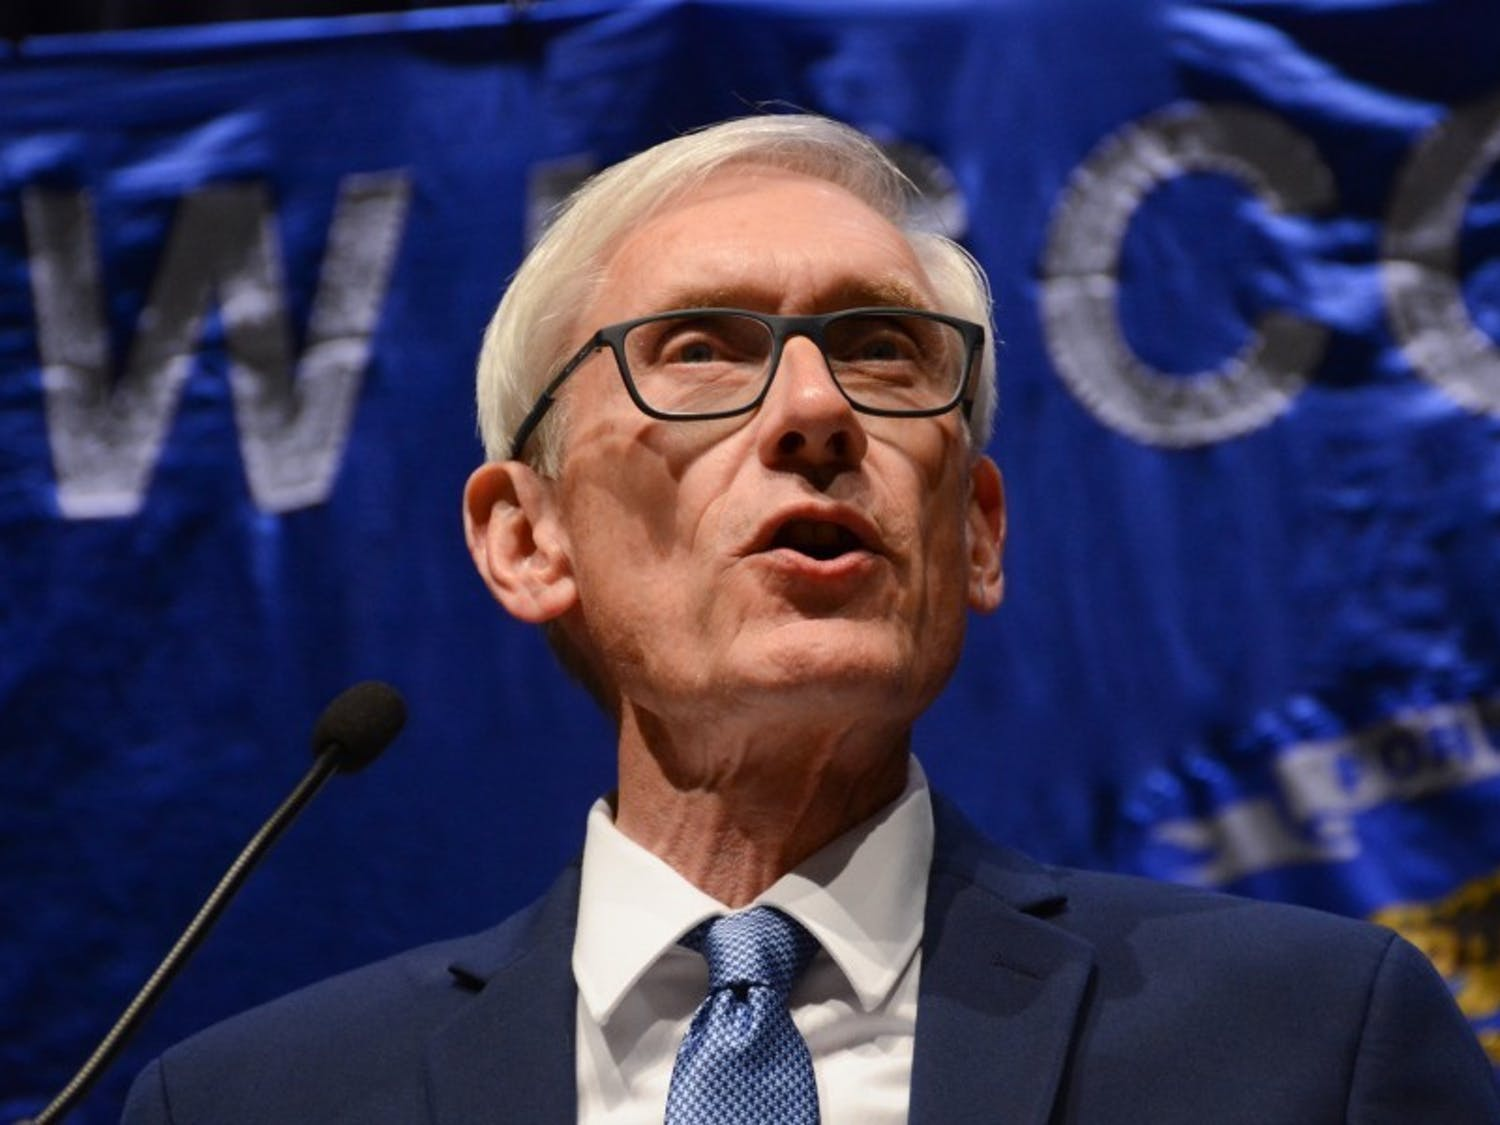 Republican legislators are calling for Evers to reopen the state within the next four weeks.